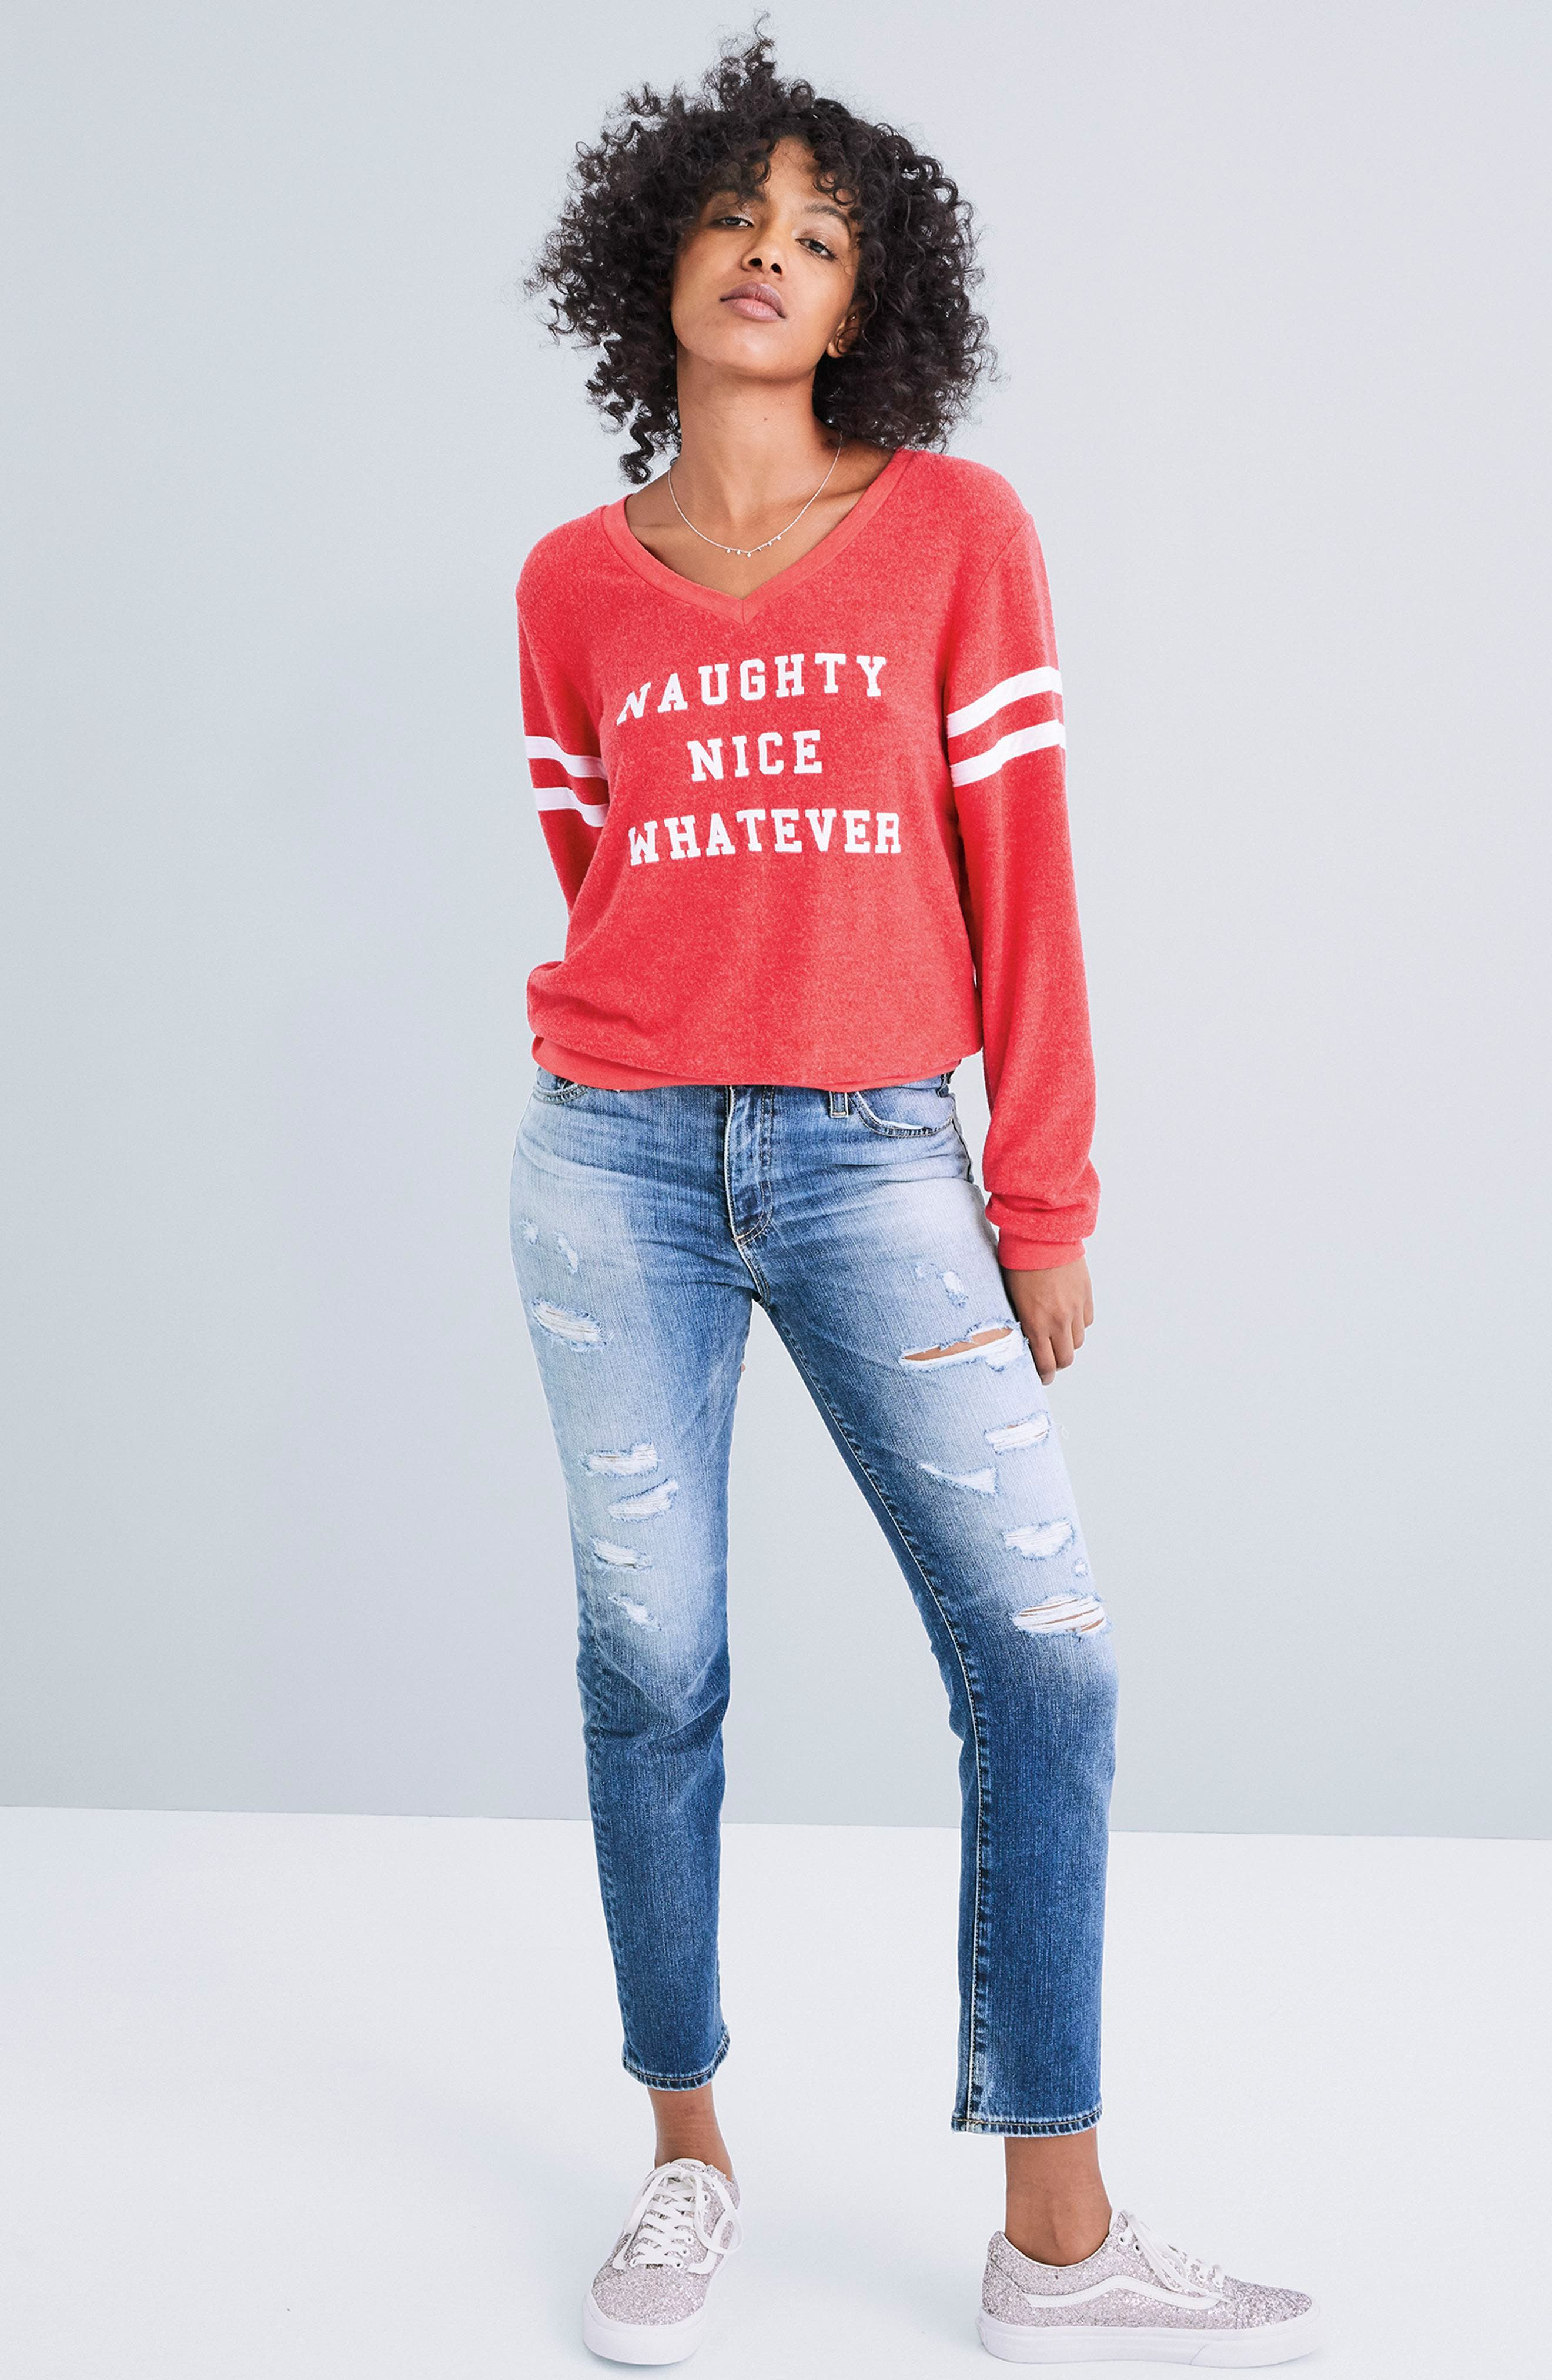 Naughty Nice Whatever Sweatshirt,                             Alternate thumbnail 2, color,